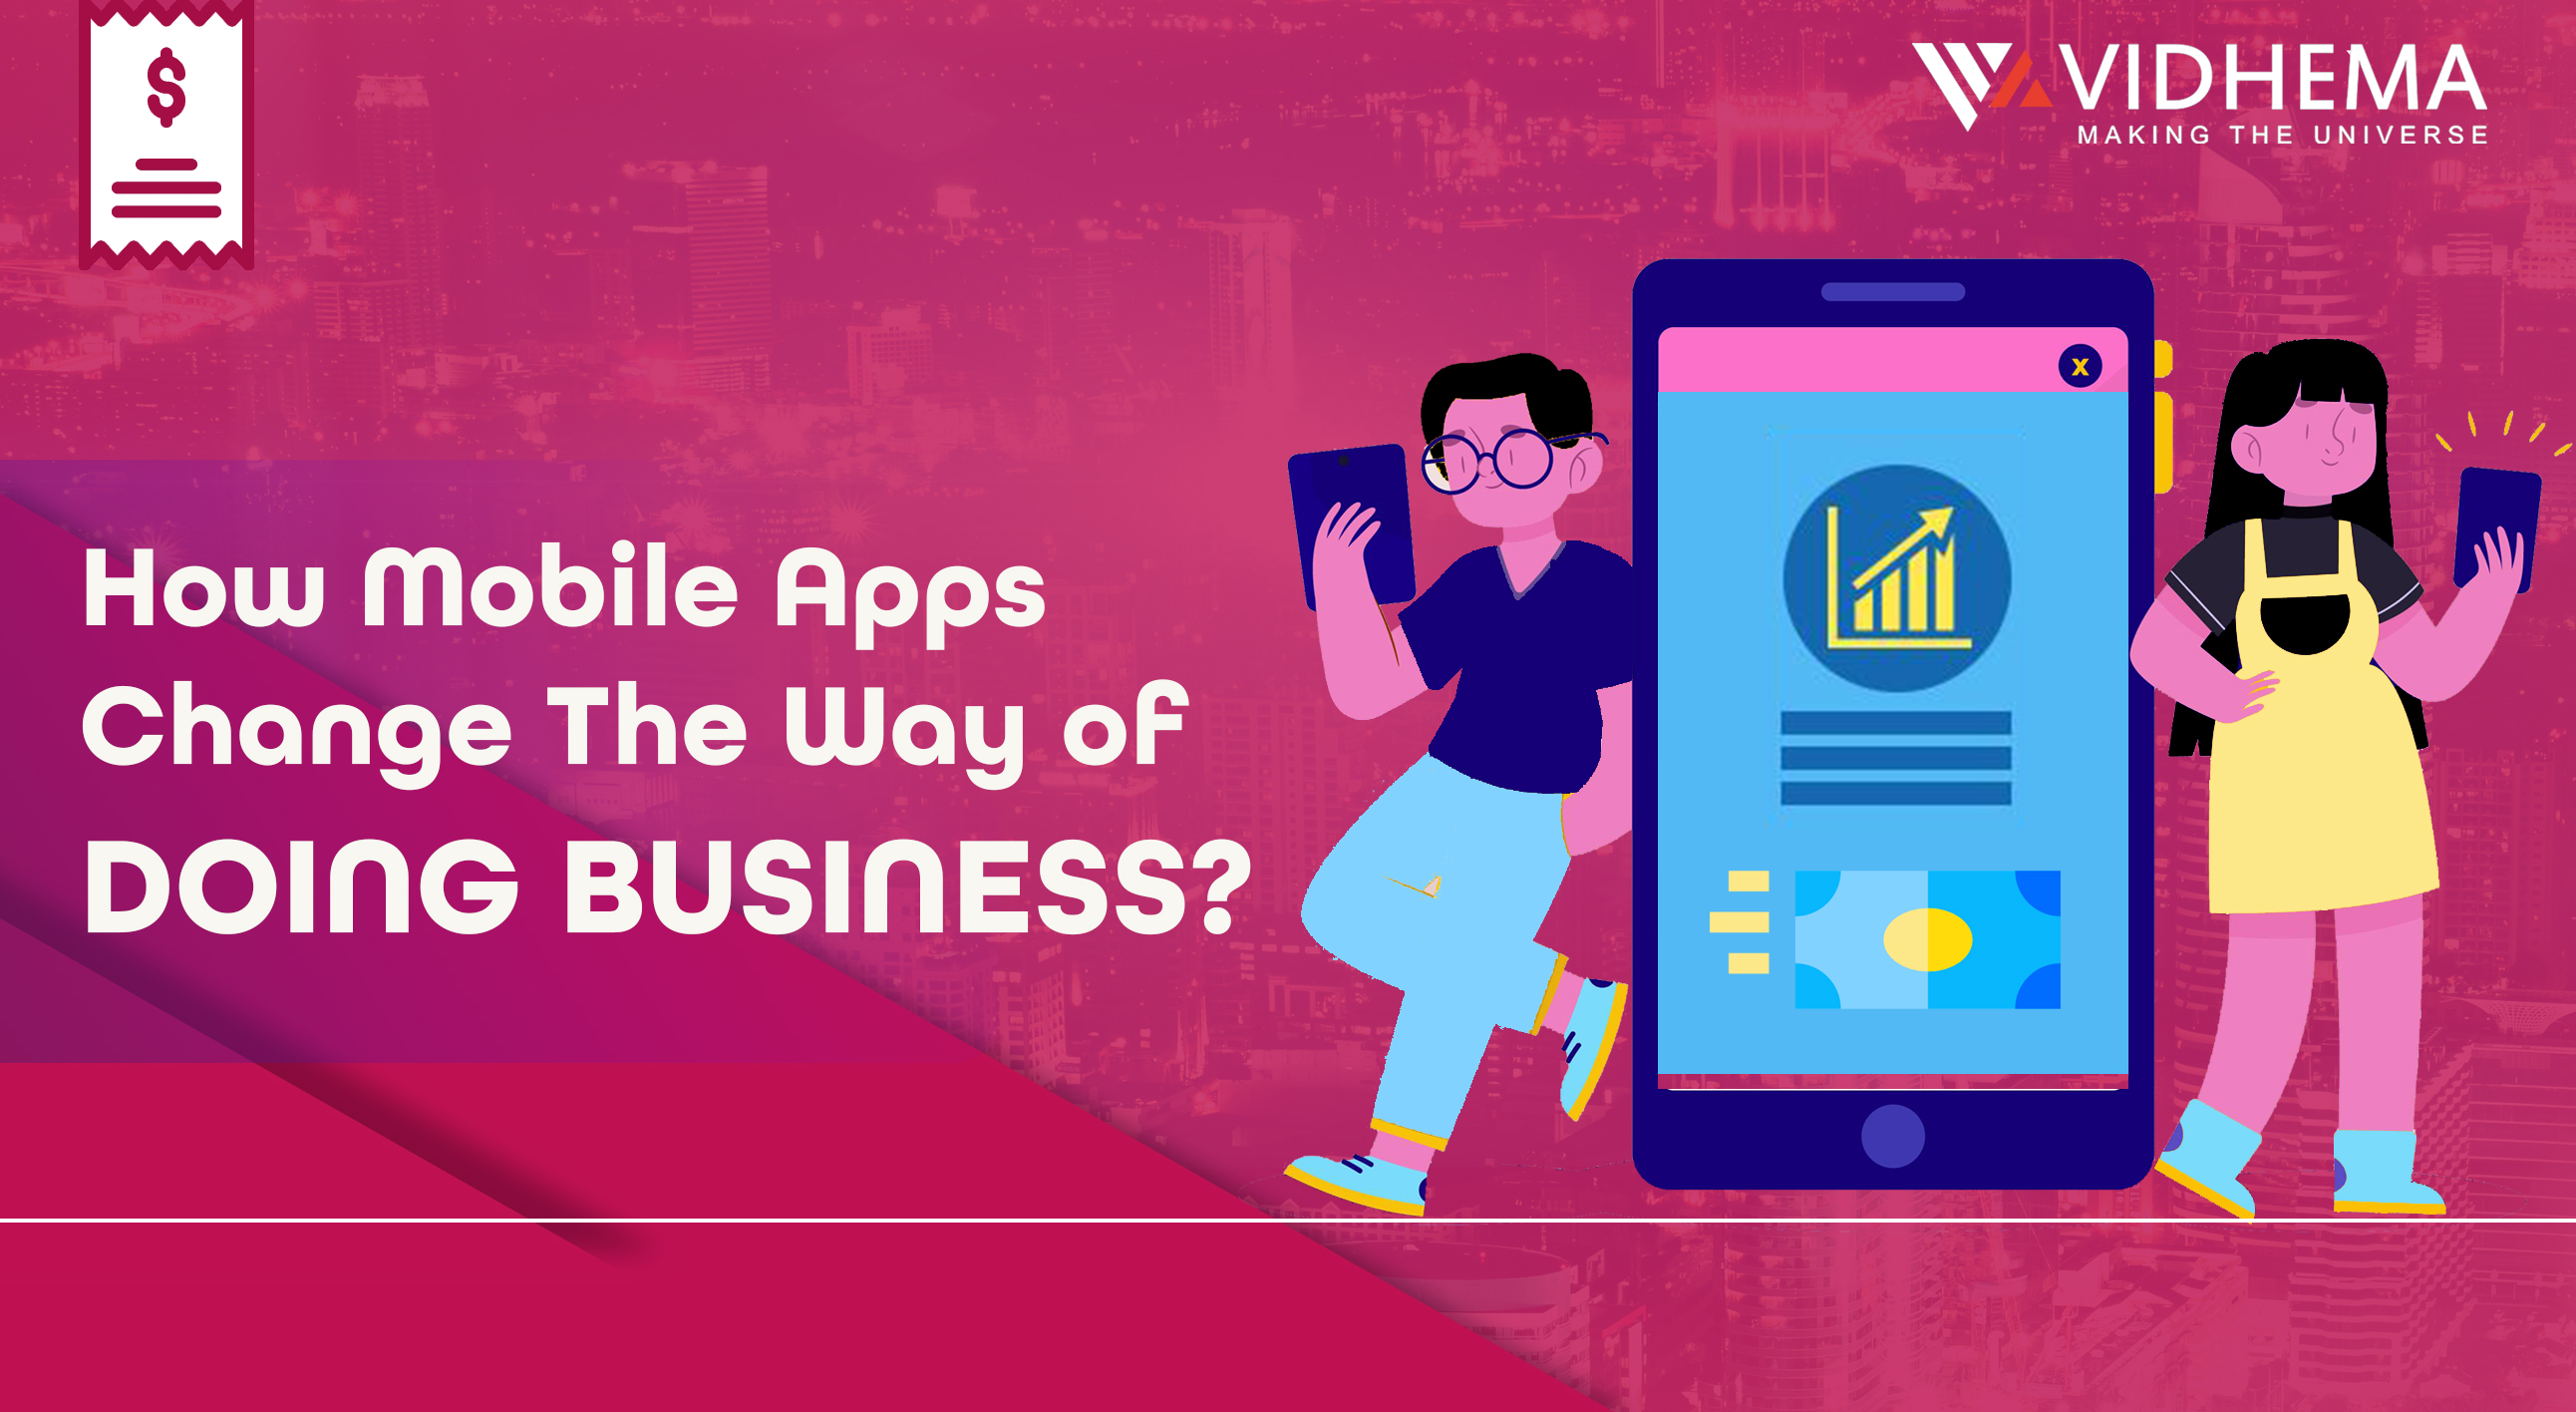 How Mobile Apps Change The Way of Doing Business